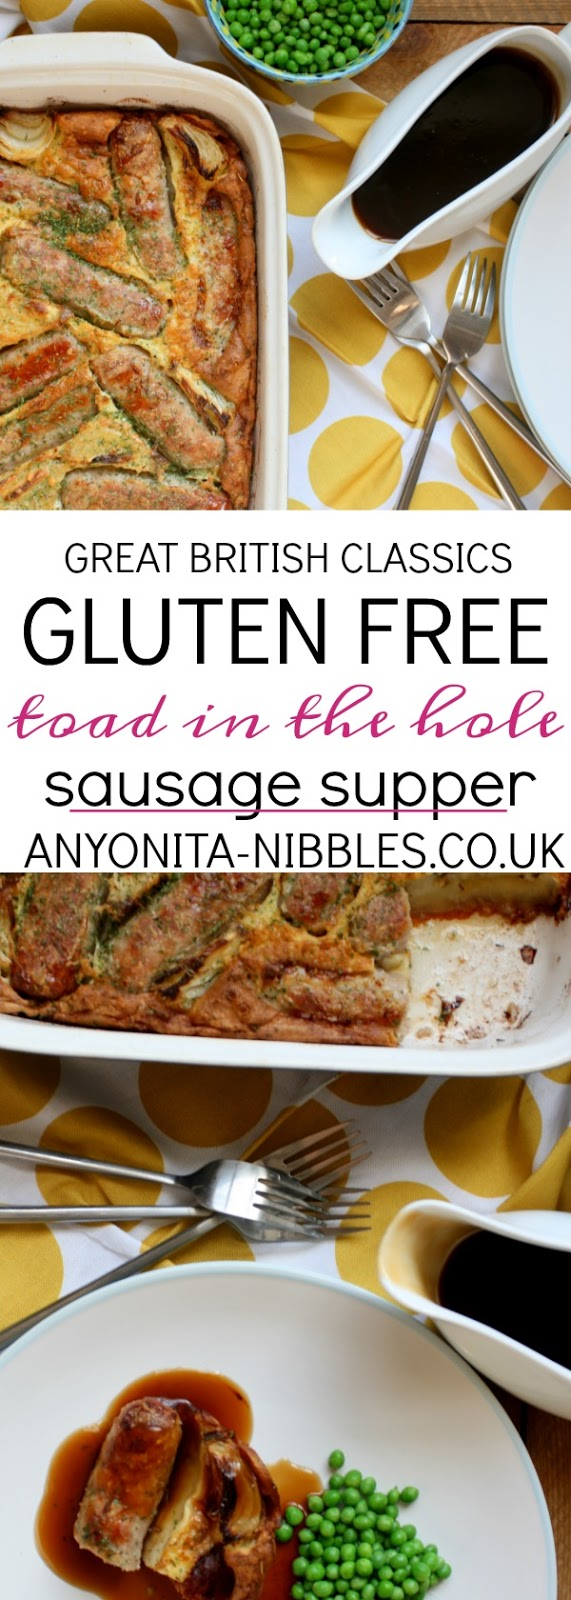 This easy sausage casserole is a crowd pleasing family favourite; a classic British meal suitable for coeliacs!